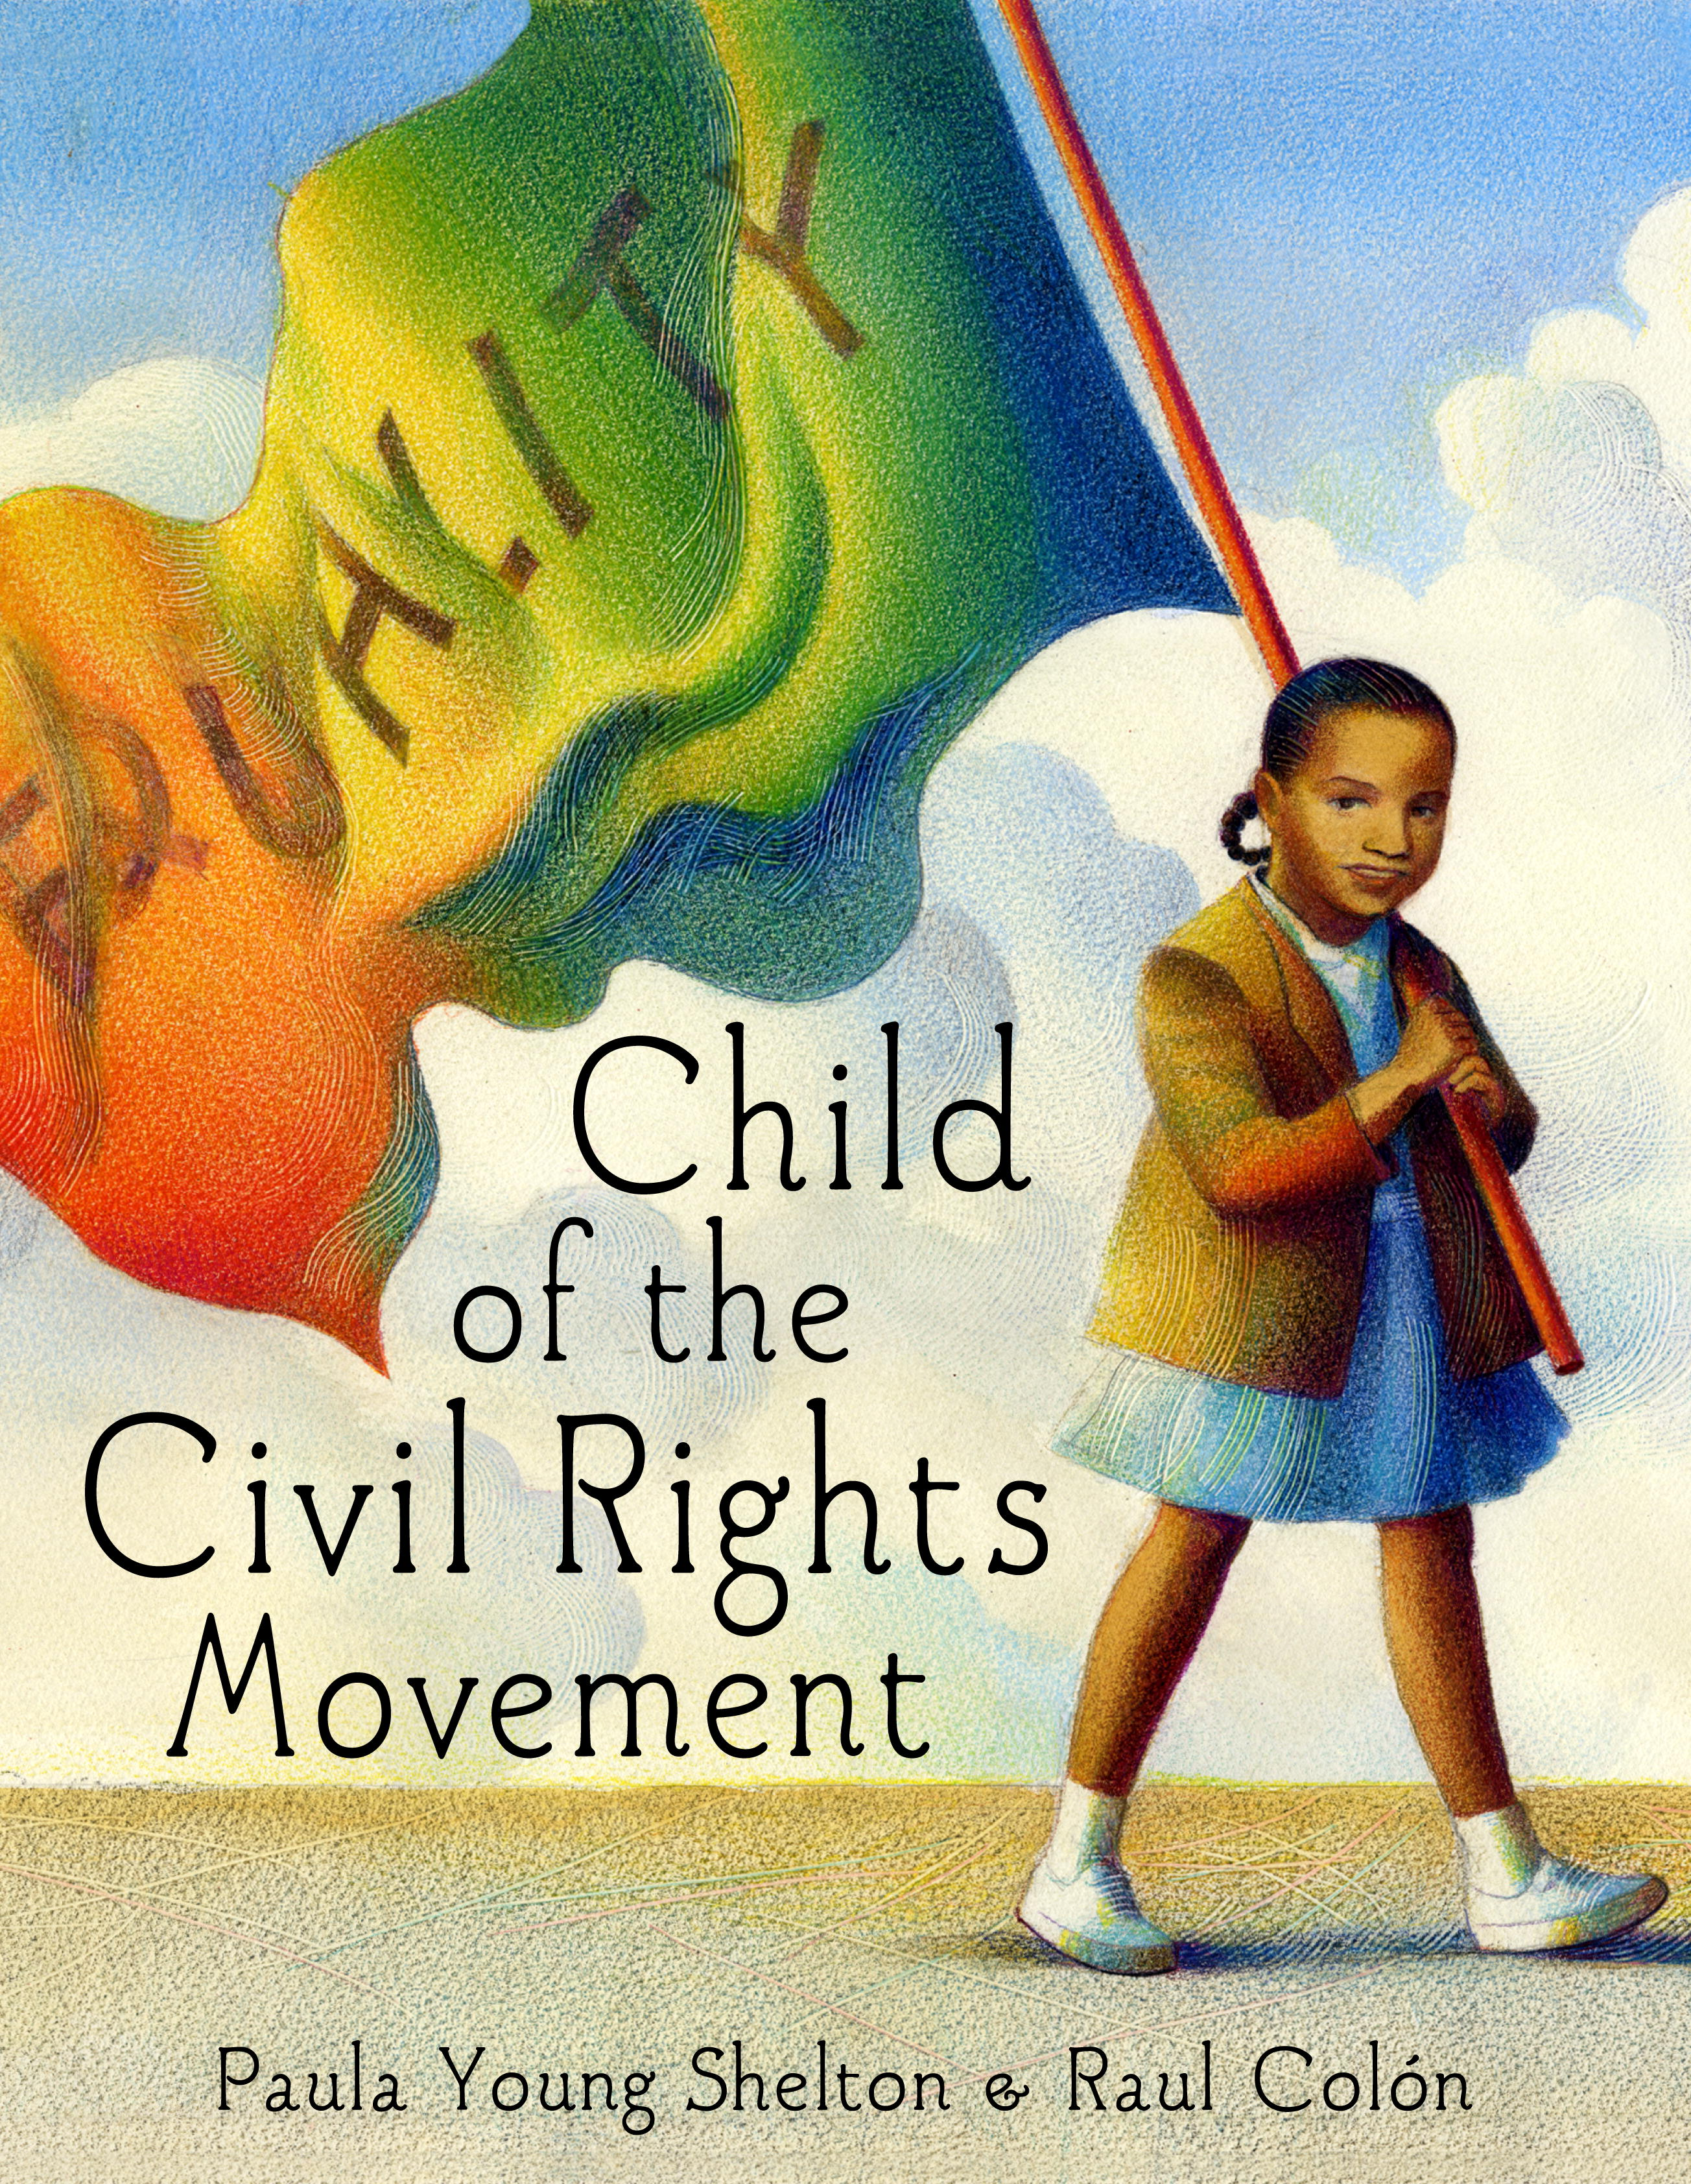 Essay about The Civil Rights Movement